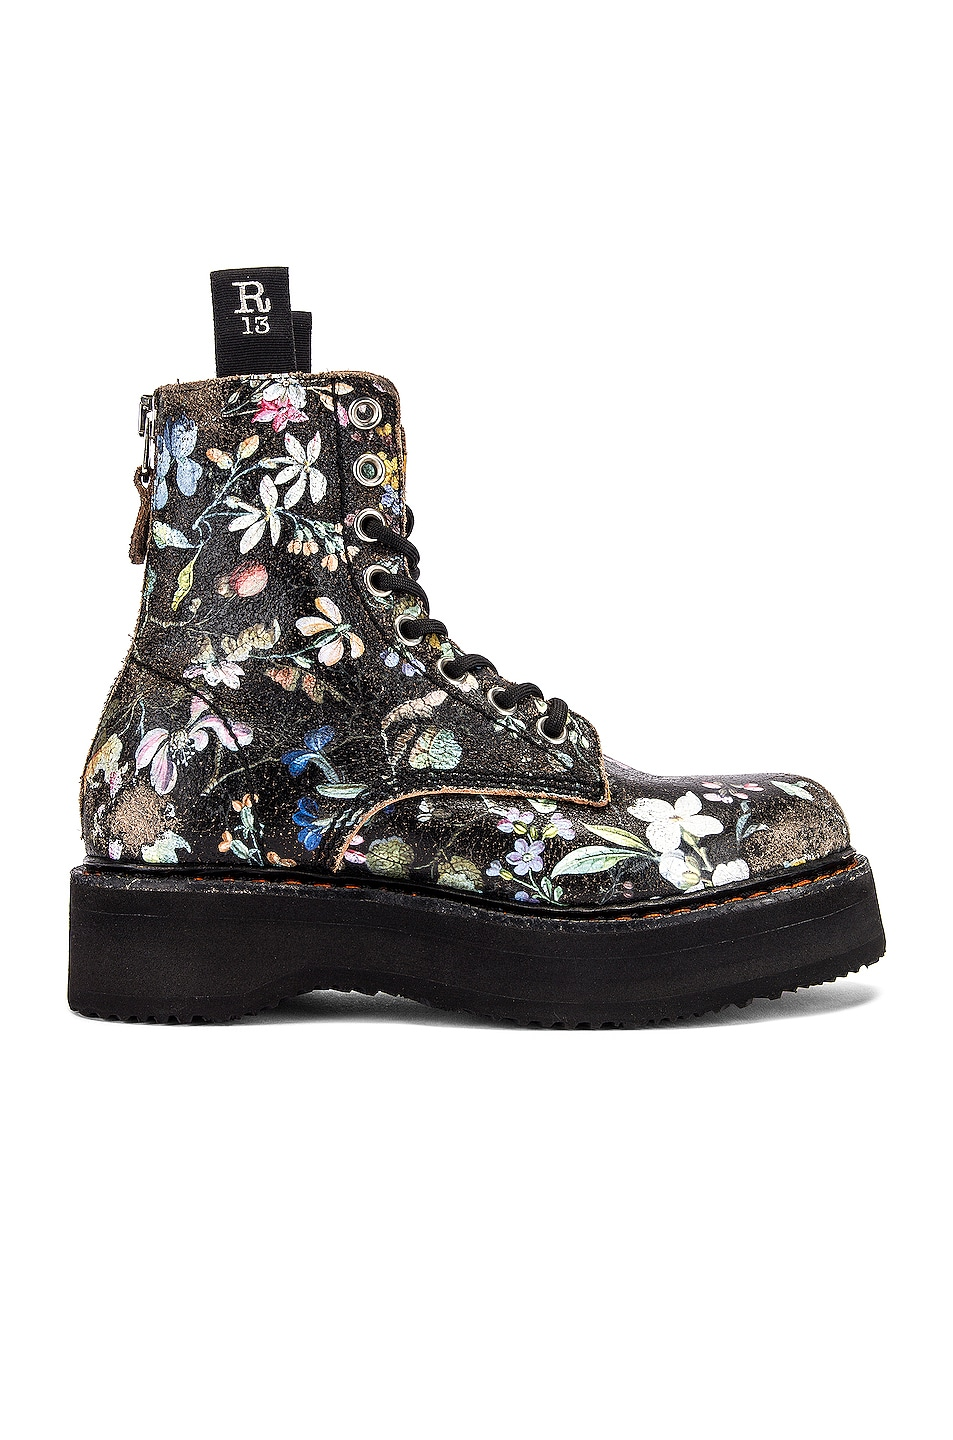 Image 1 of R13 Single Stacked Lace Up Boots in Cracked WK6 Floral